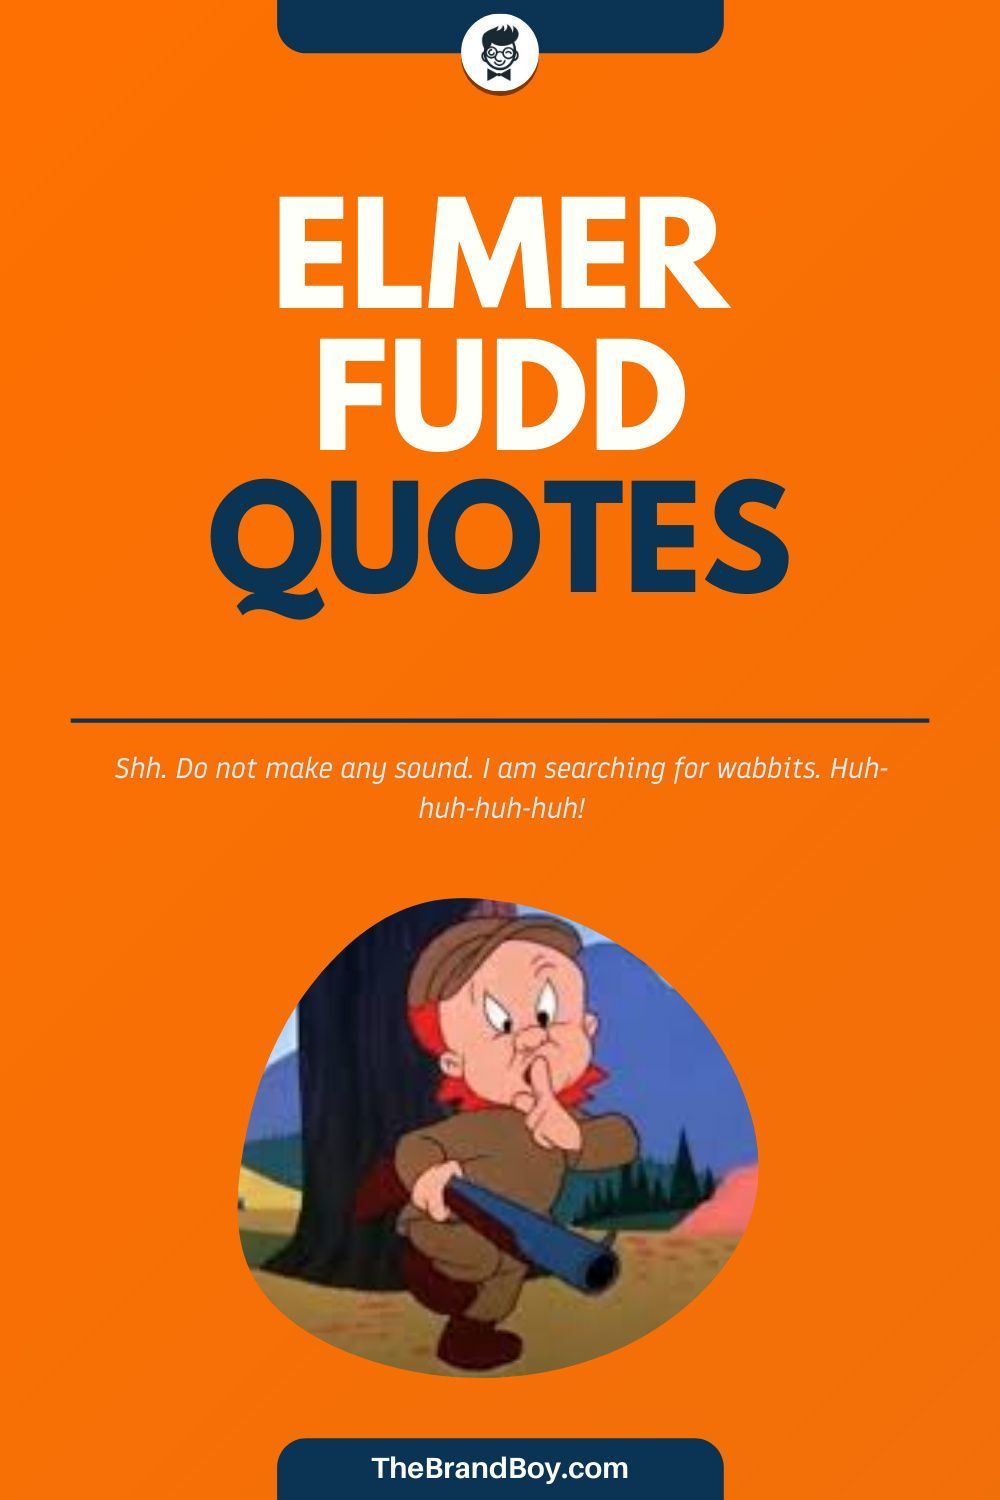 Elmer Fudd Sayings : elmer, sayings, Elmer, Sayings, Thebrandboy.com, Fudd,